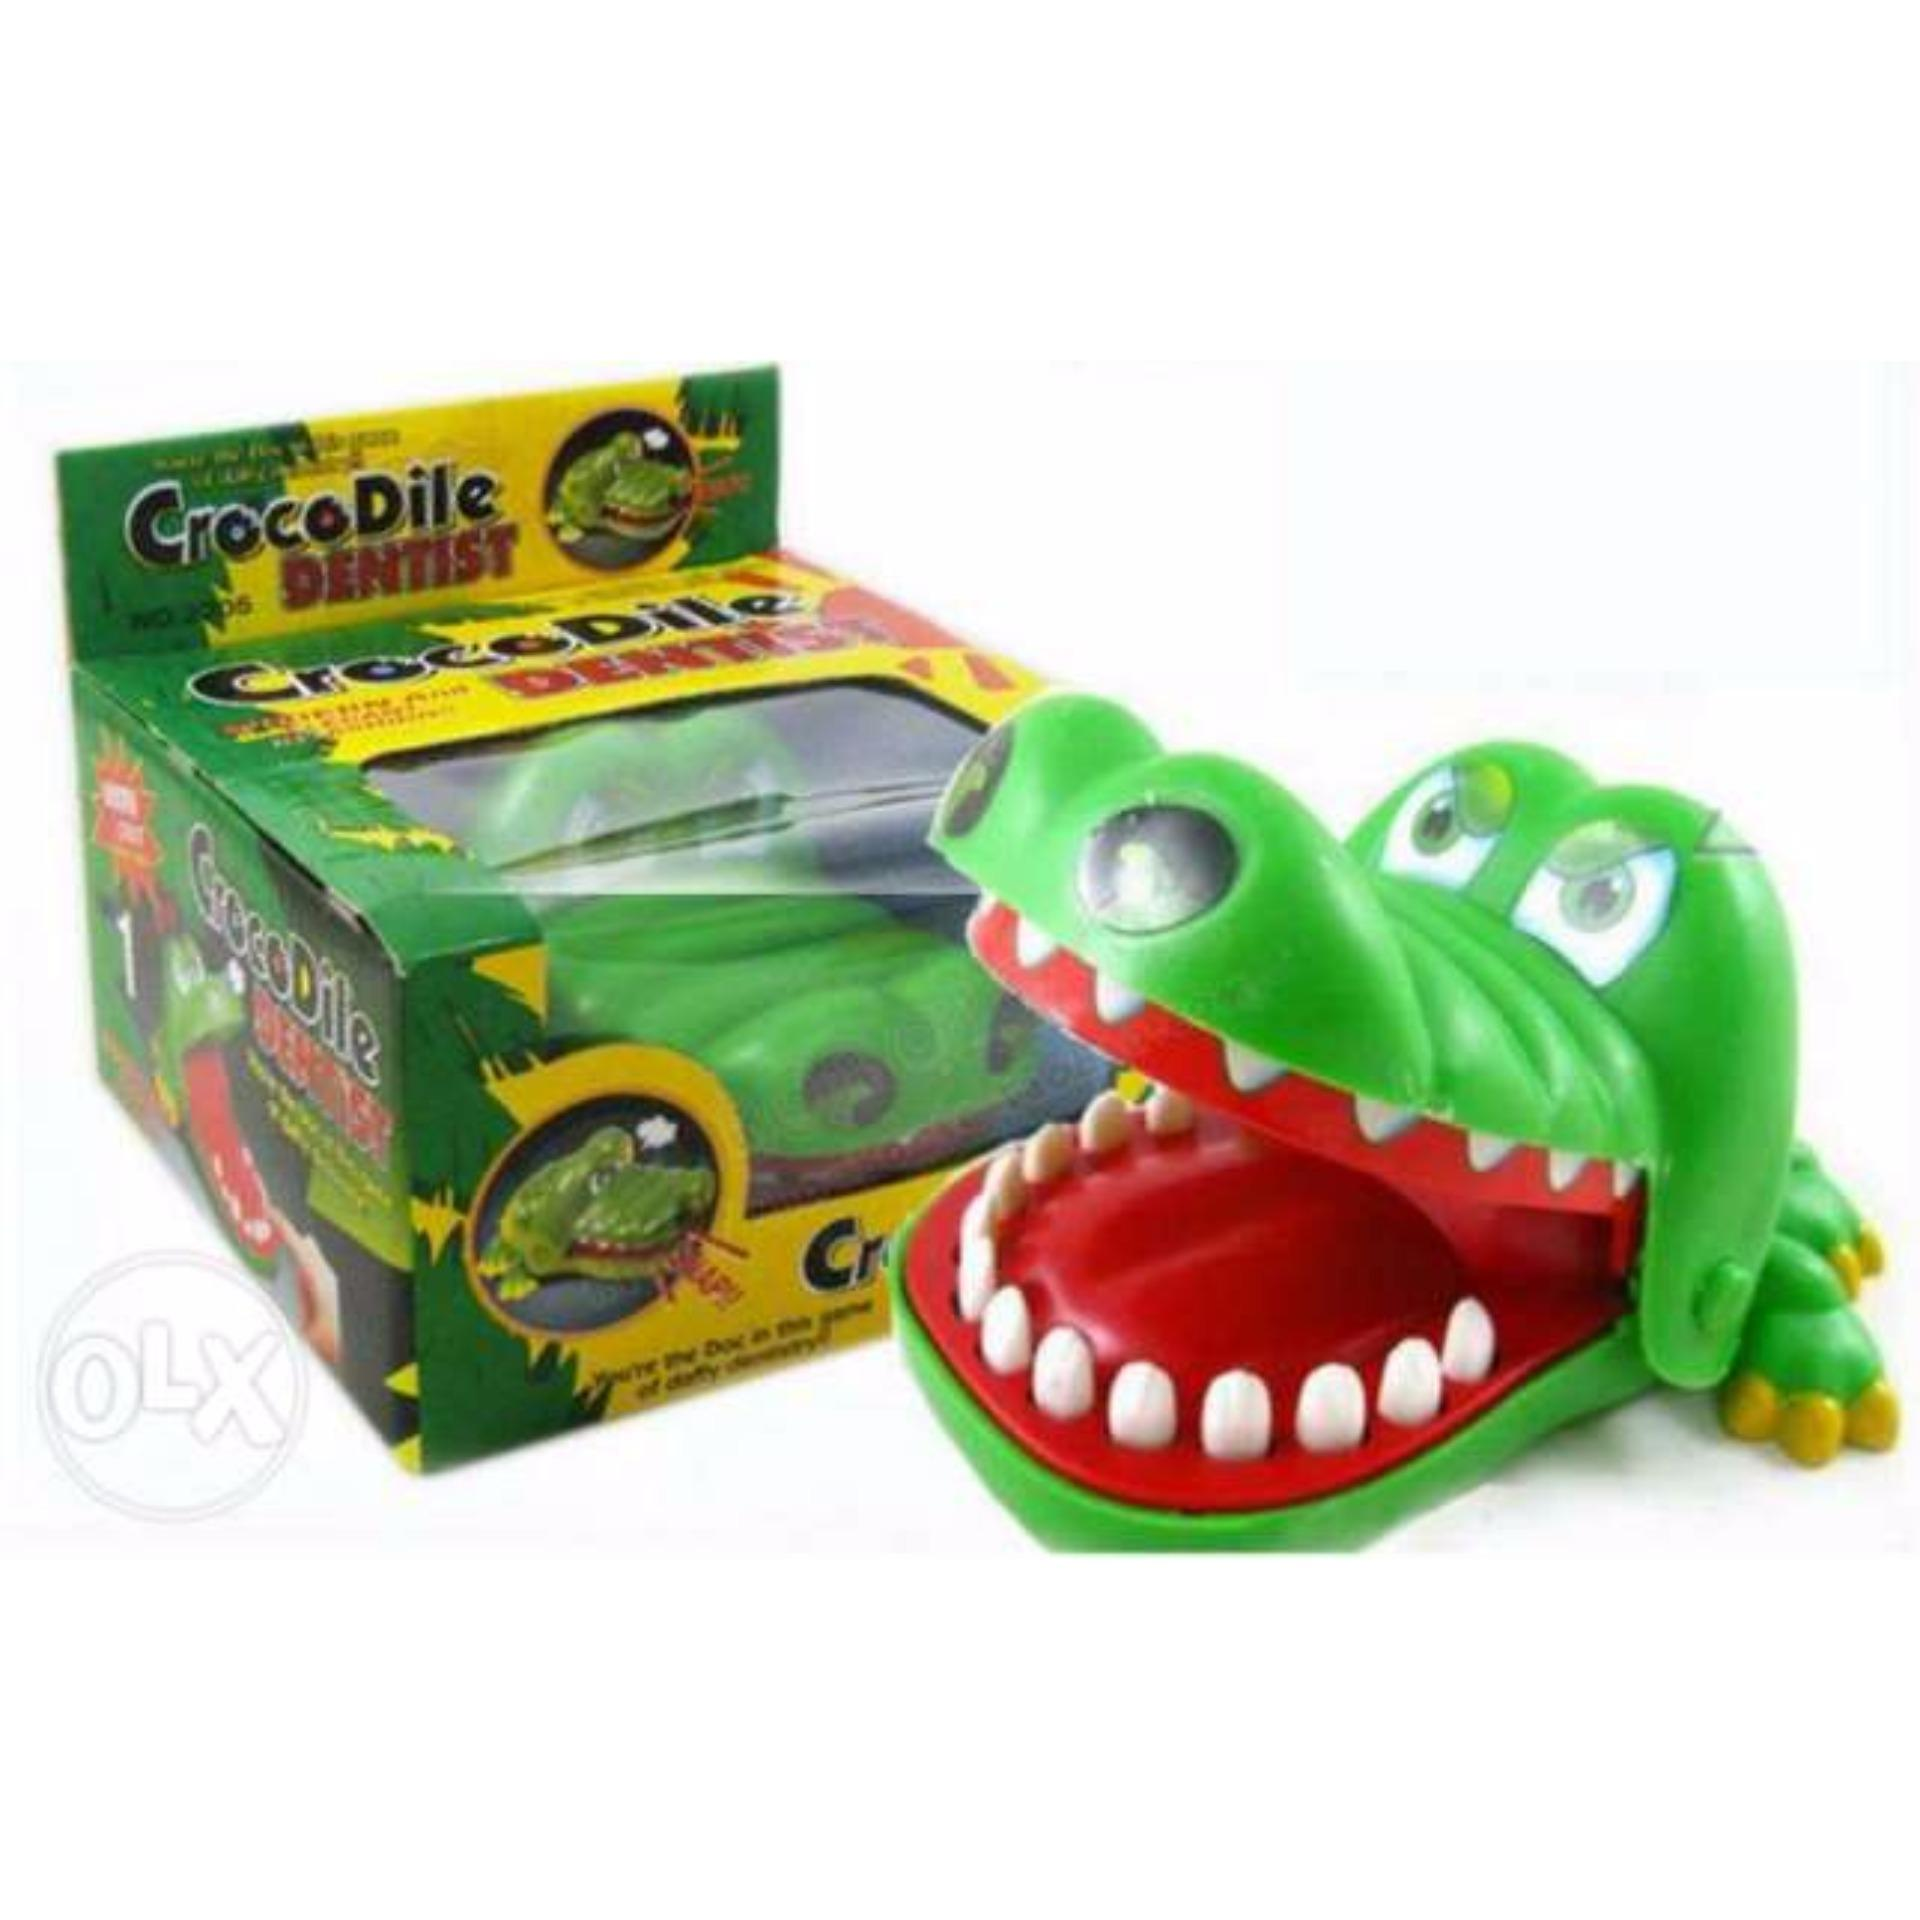 Philippines Toy Crocodile Dentist Compare Save